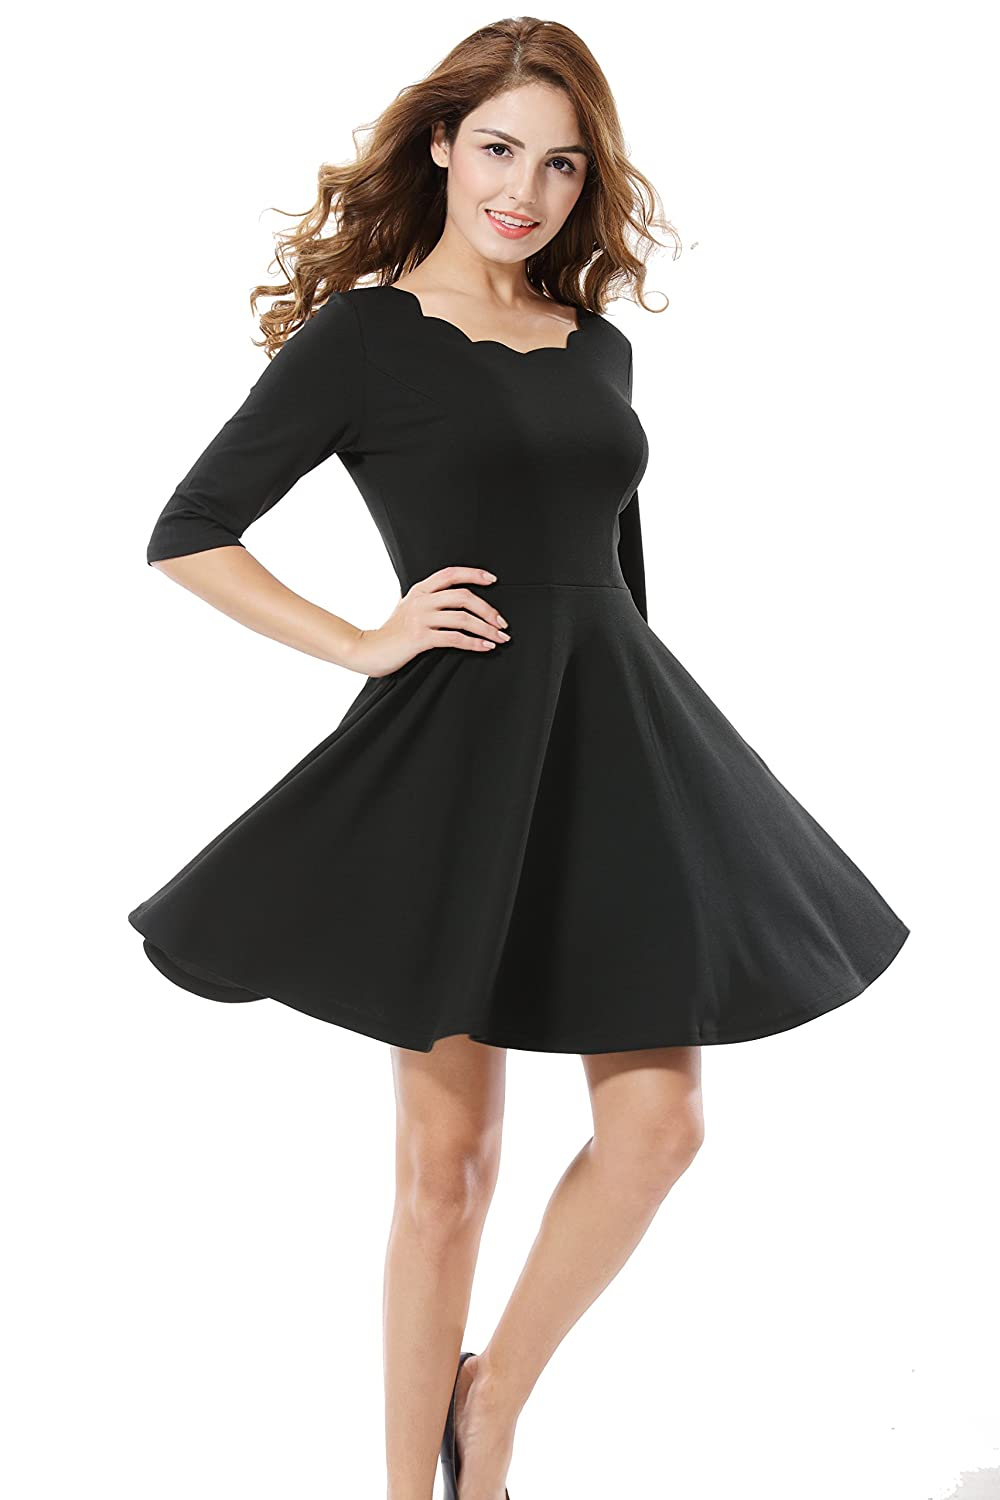 23d3098d4ed8 Apperloth Women s Solid Dress Half Sleeve Scallops Neck High Waist Cocktail Party  Skater Dresses at Amazon Women s Clothing store